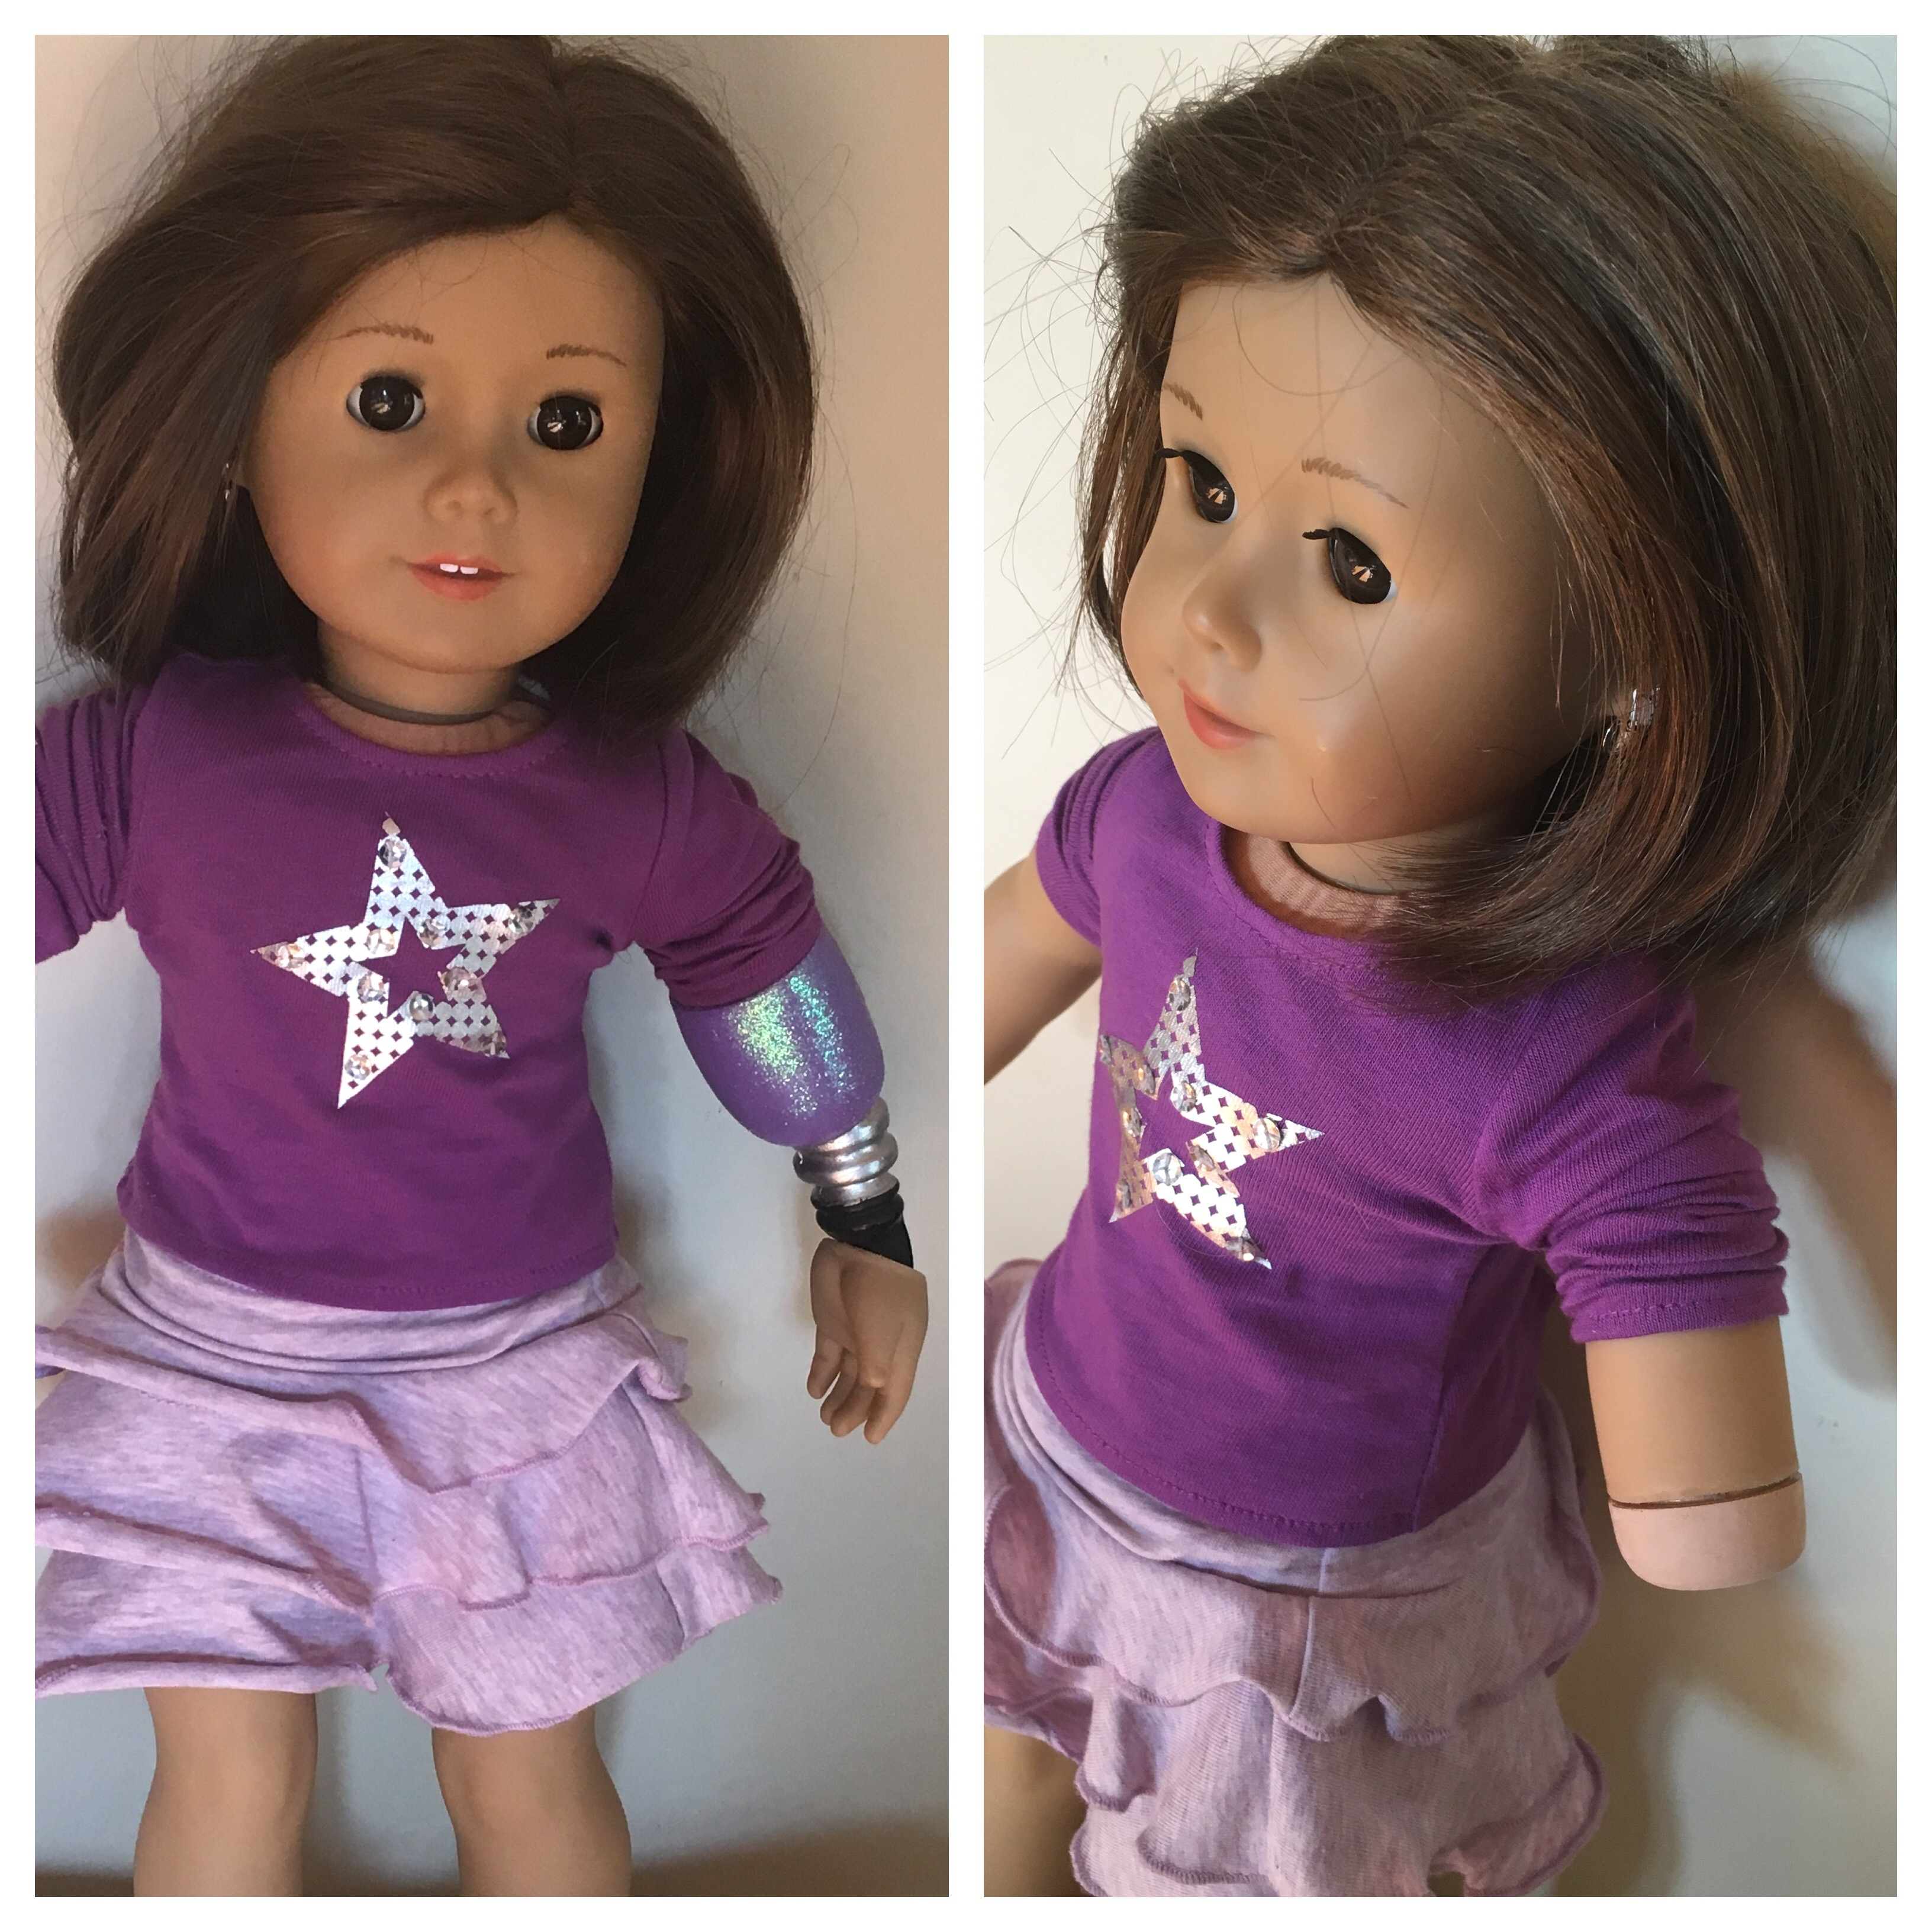 STAR WARS PJS DOLL CLOTHES CUSTOM MADE FOR AMERICAN GIRL DOLL